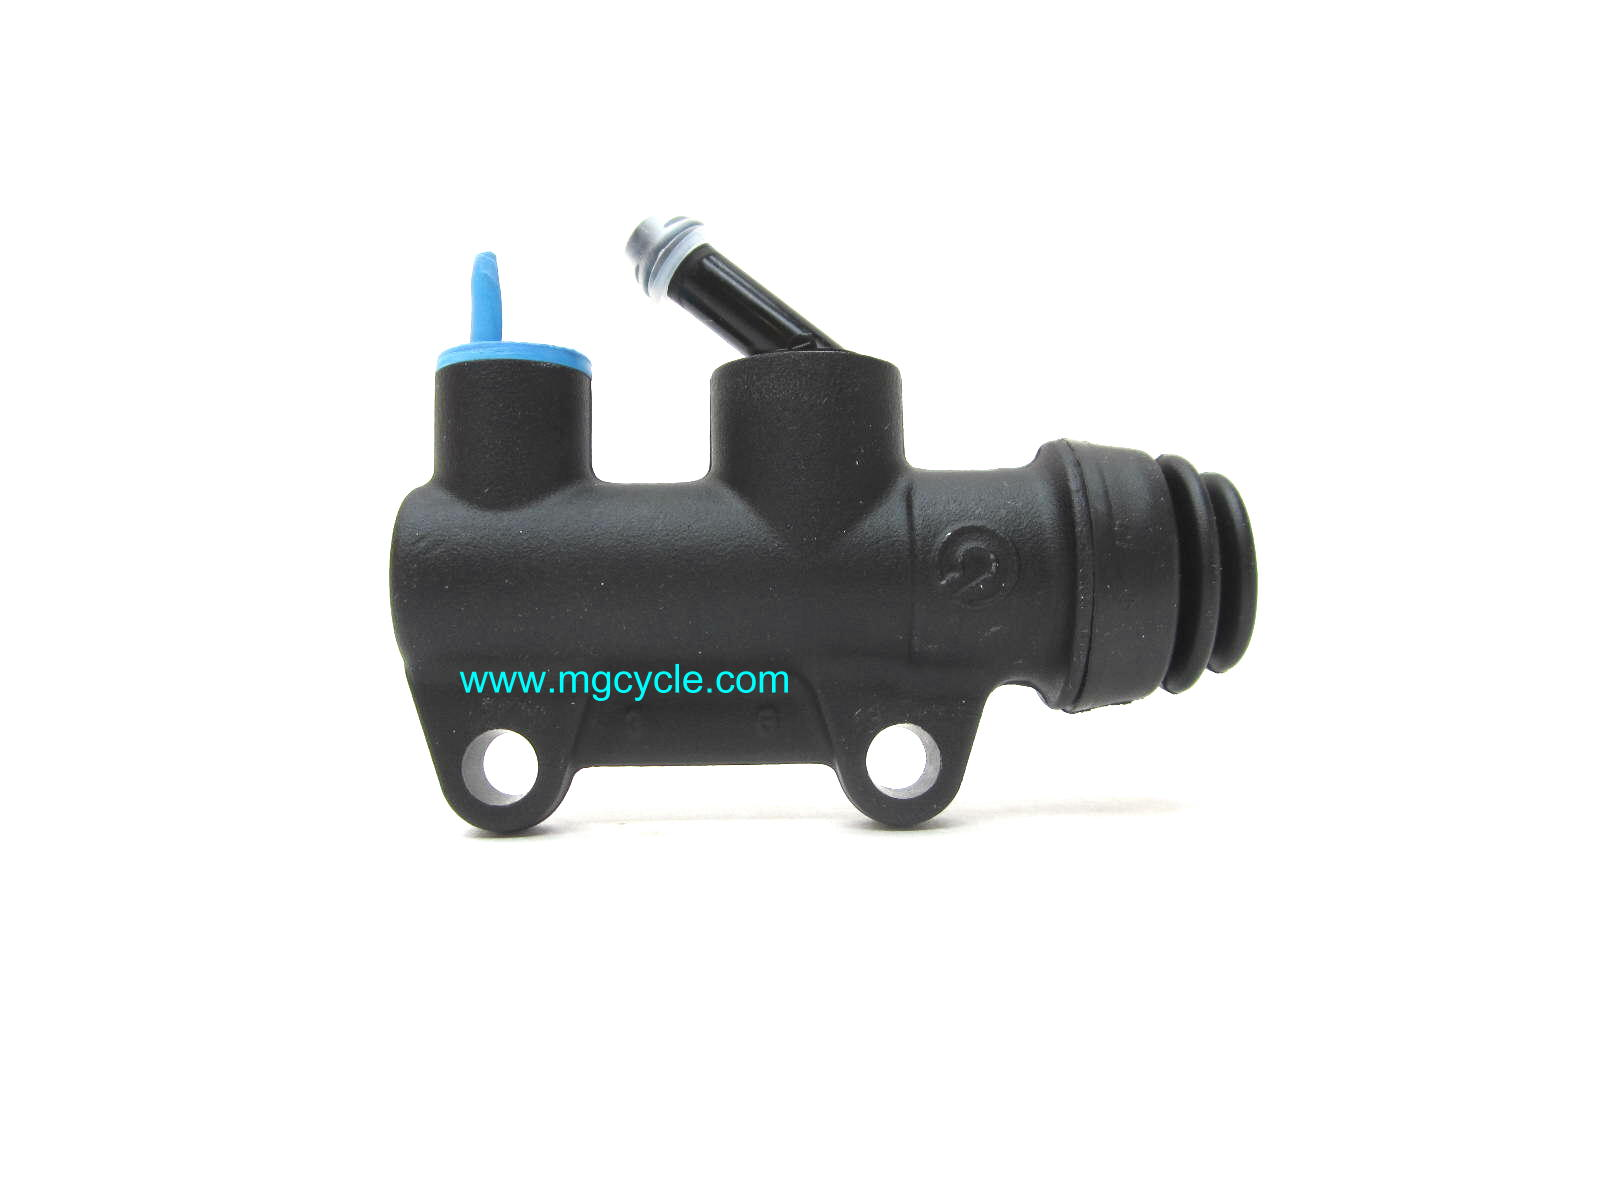 rear master cylinder all CARC models: Stelvio Griso Norge Breva